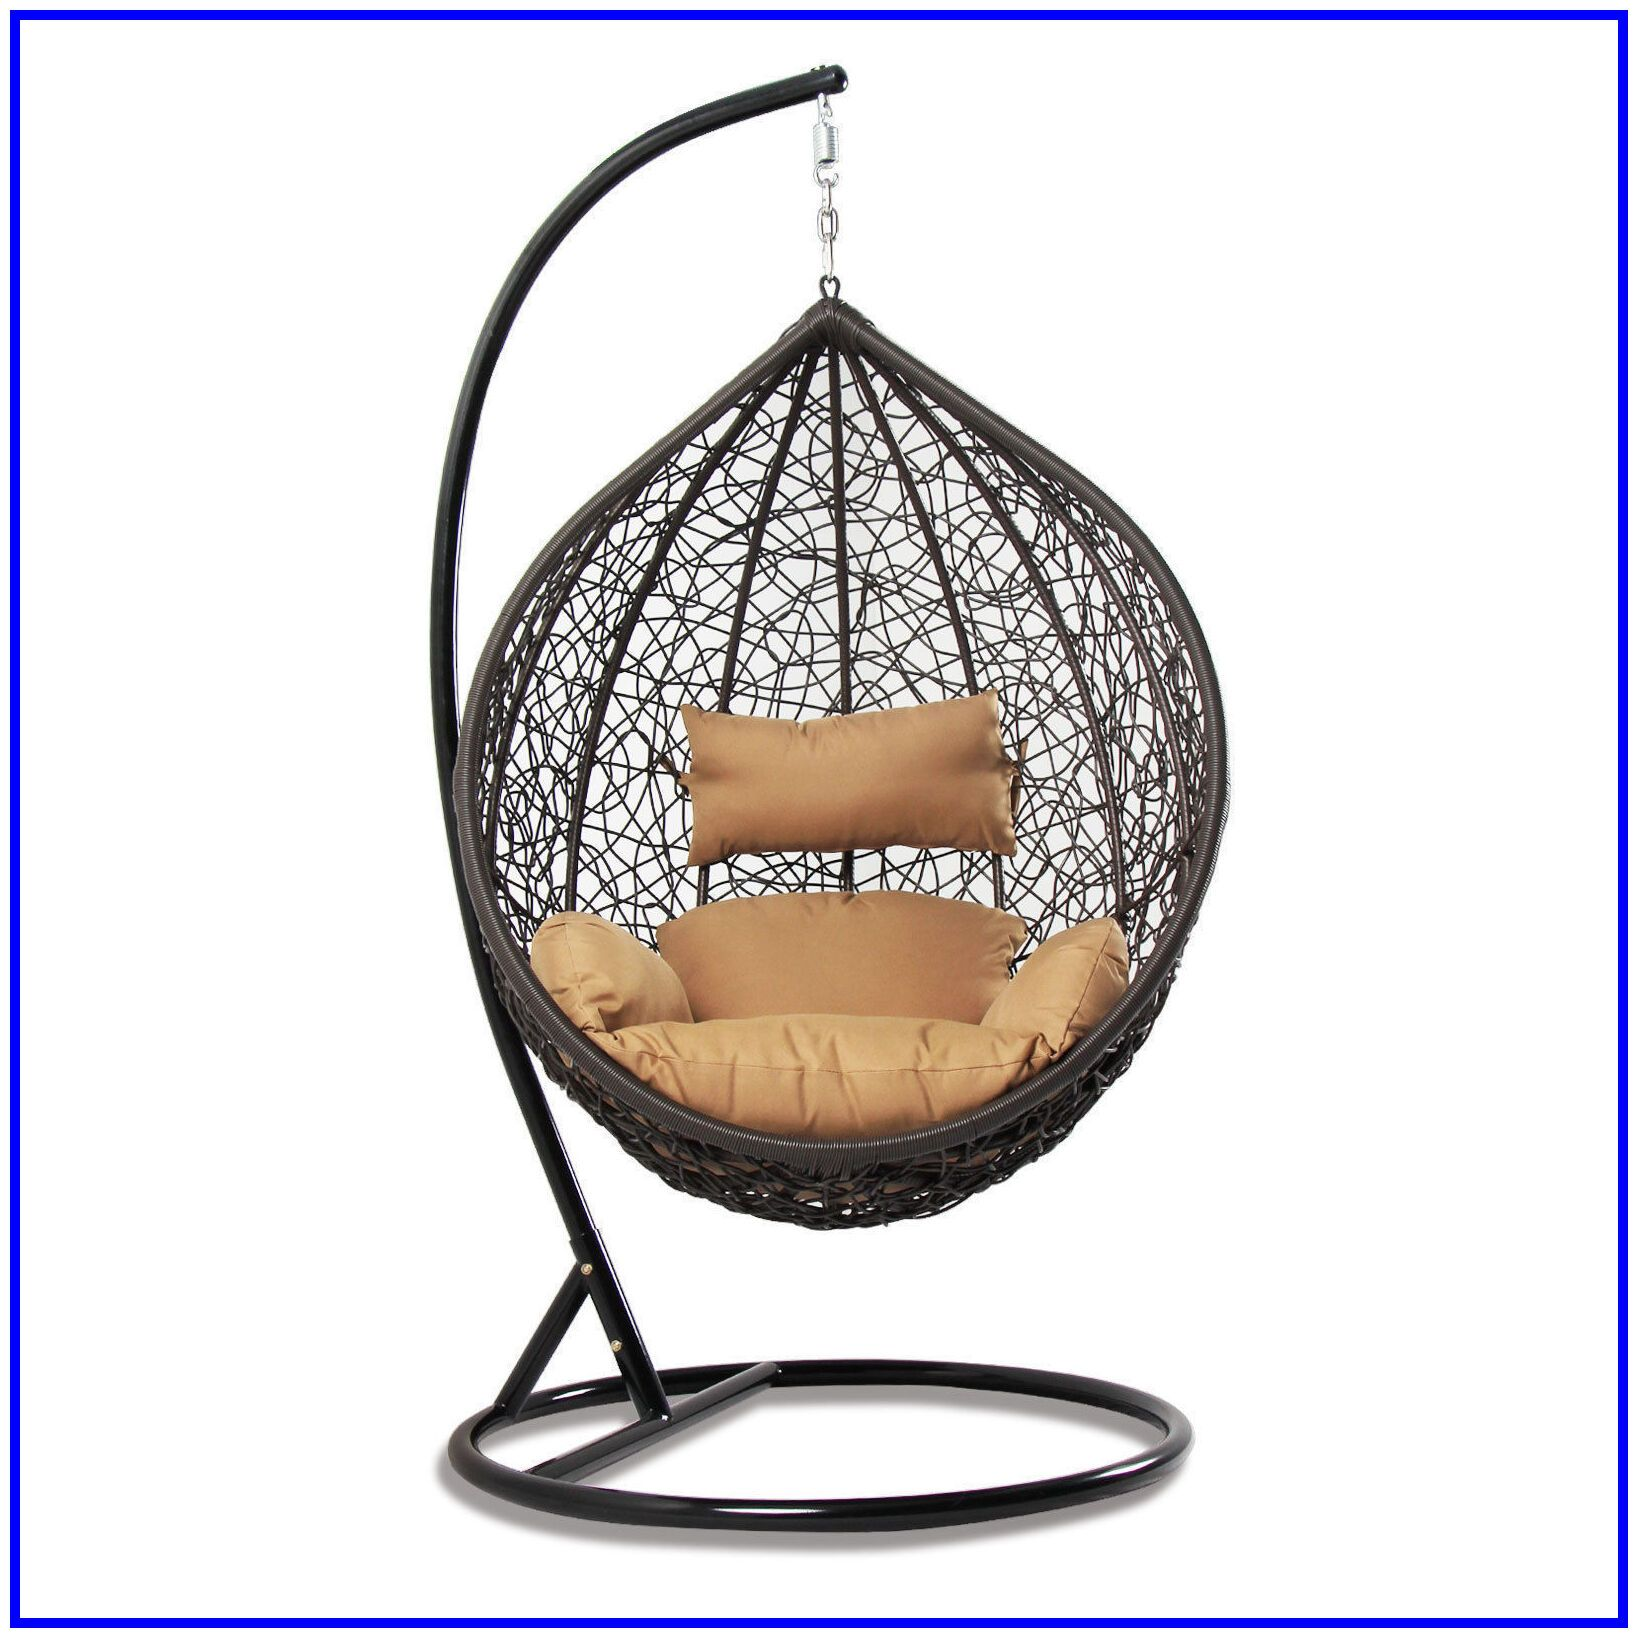 49 Reference Of Egg Chair Wicker Hanging Hanging Egg Chair Hanging Chair Chair